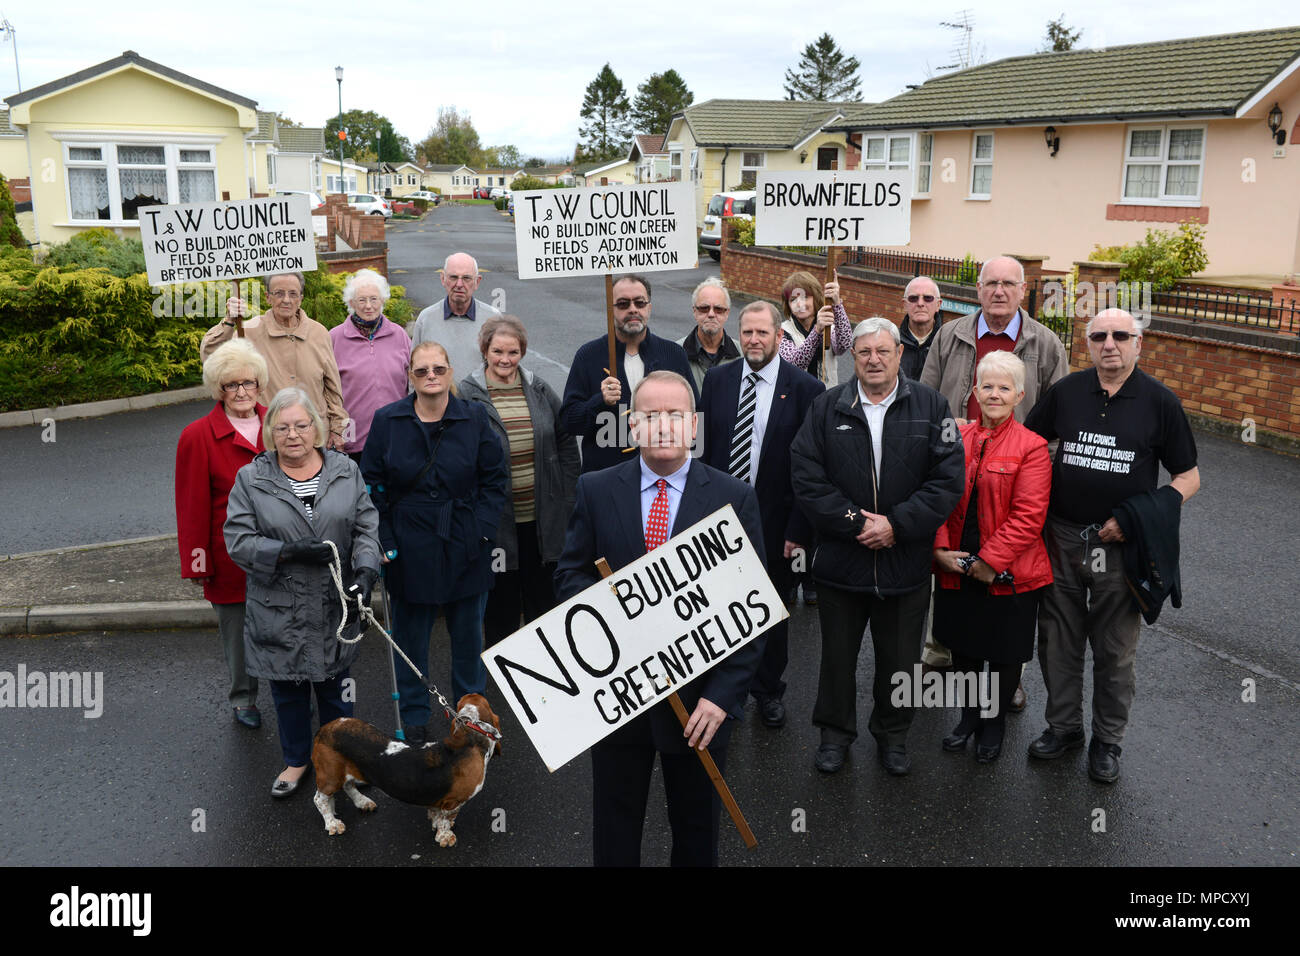 Mark Pritchard MP with residents protesting about plans to build on greenfield sites at Breton Park in Muxton, Telford. - Stock Image